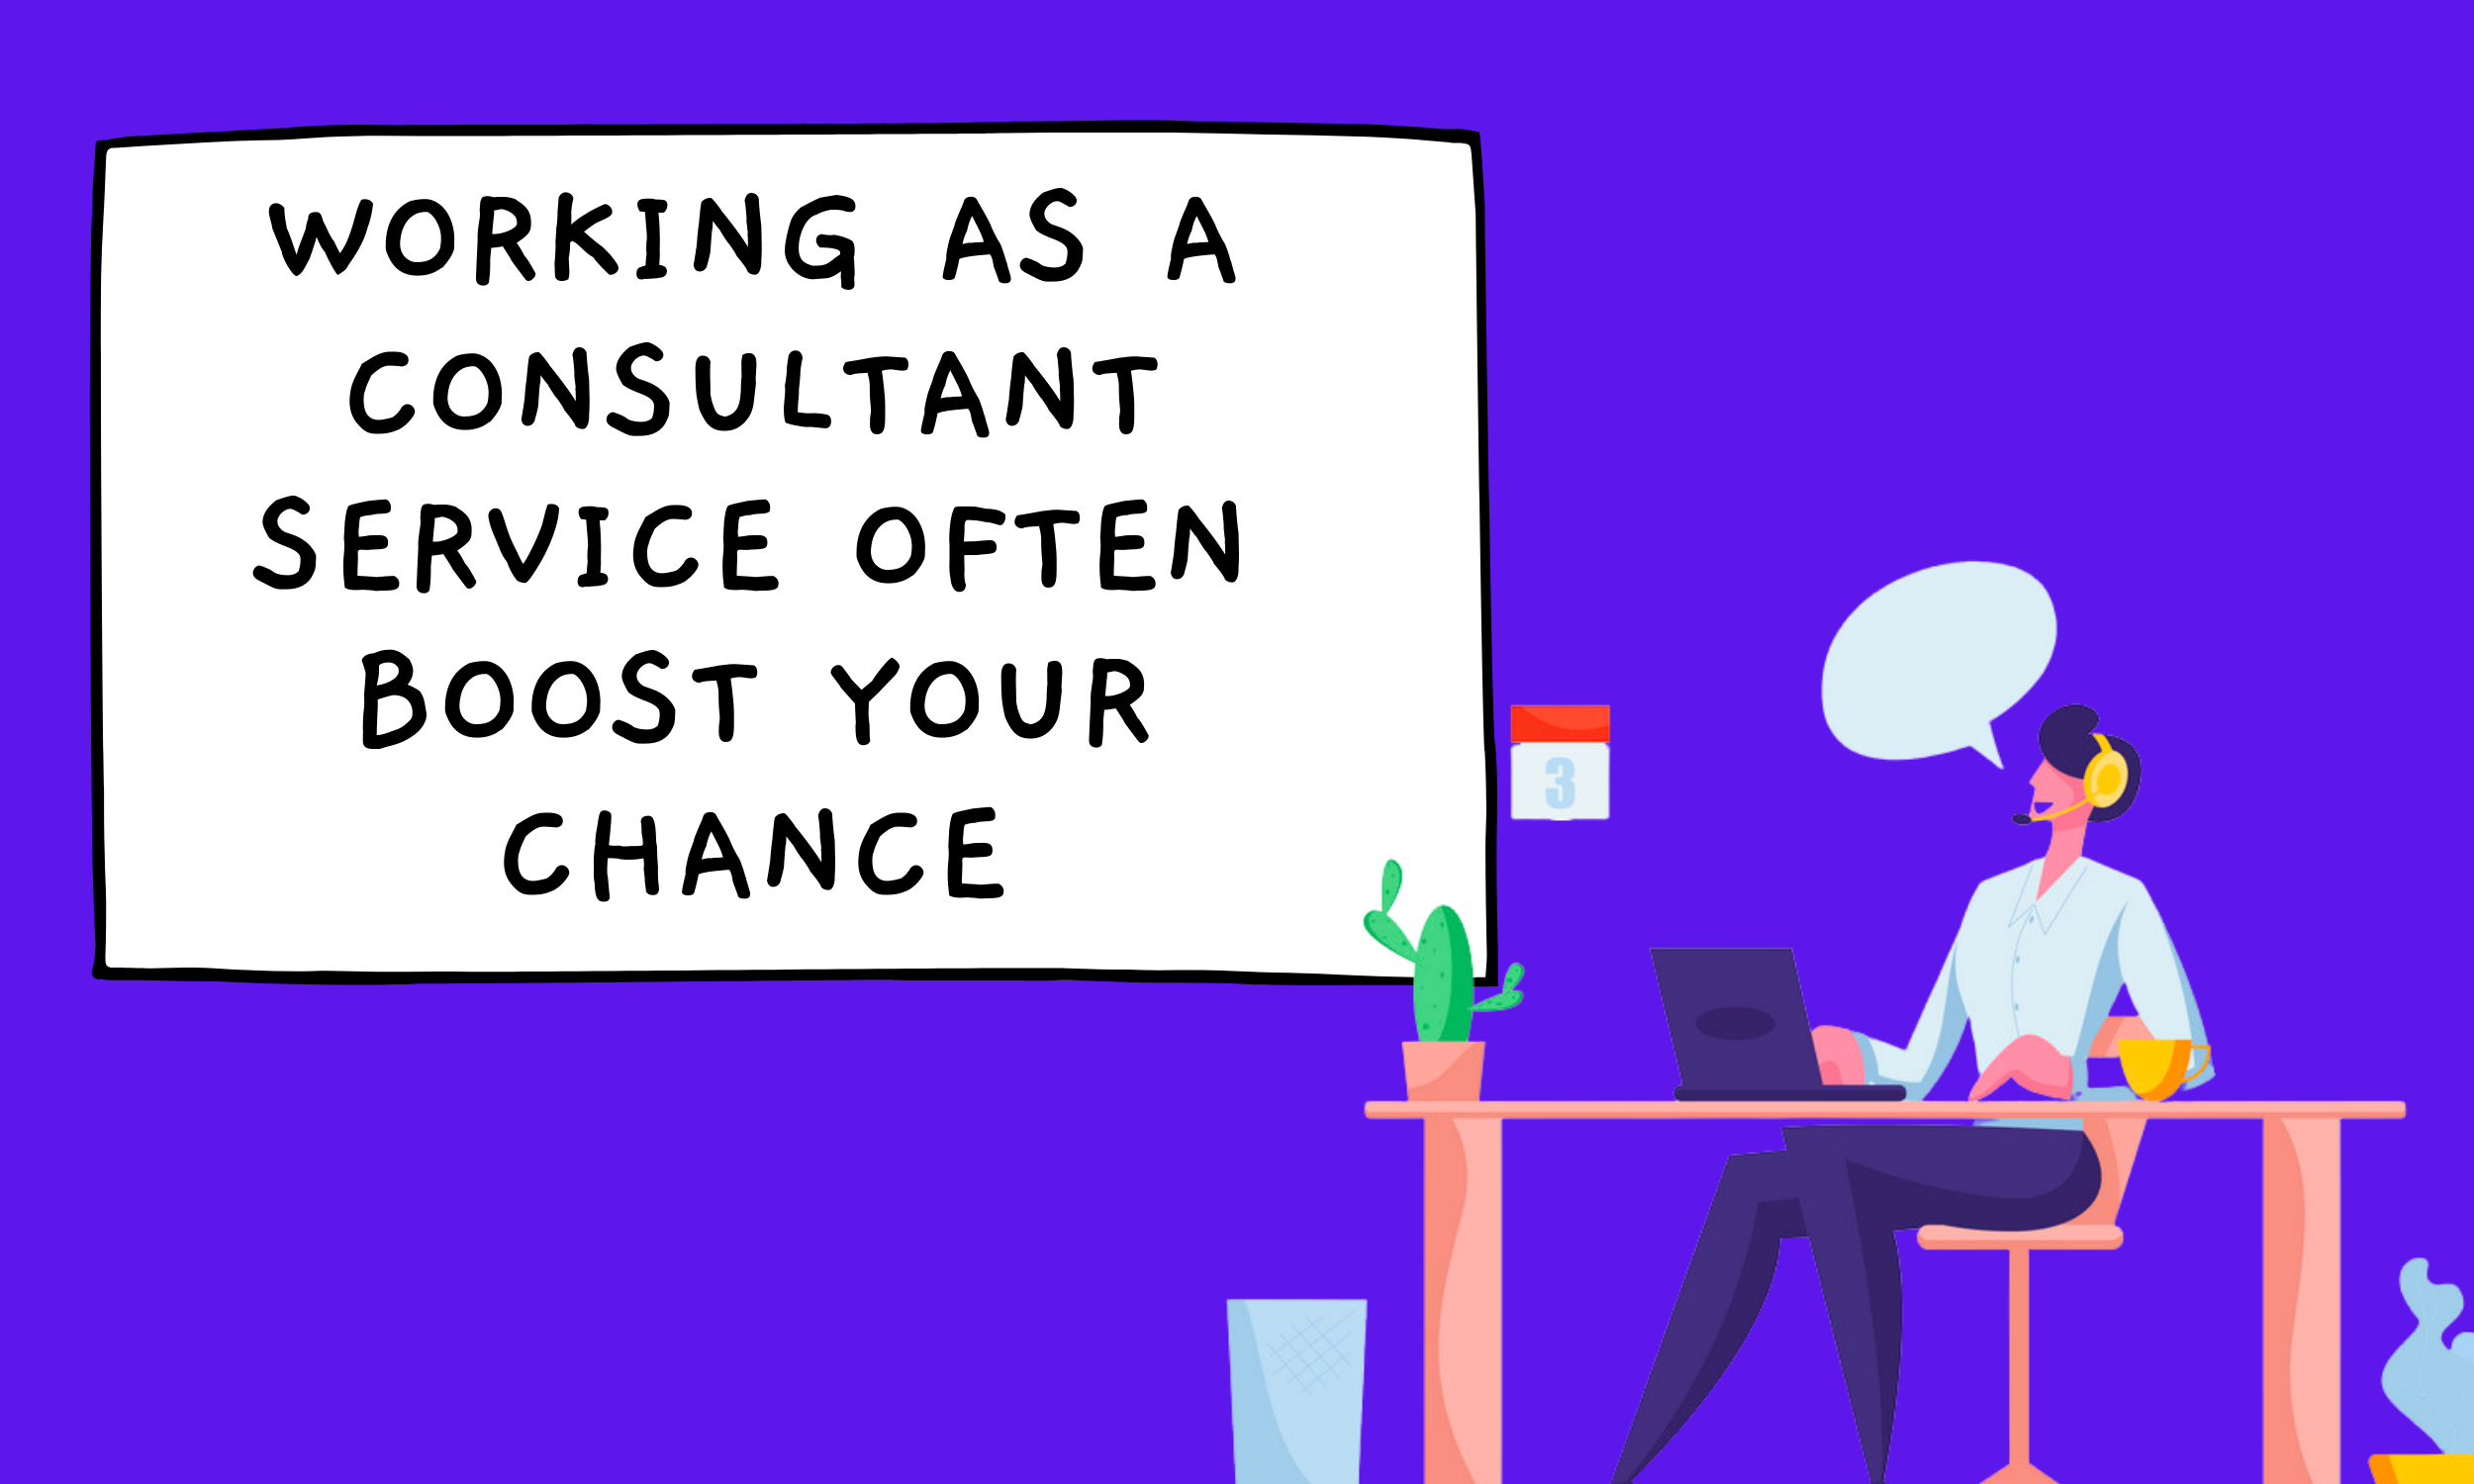 Working-as-a-consultant-service-often-boost-your-chance